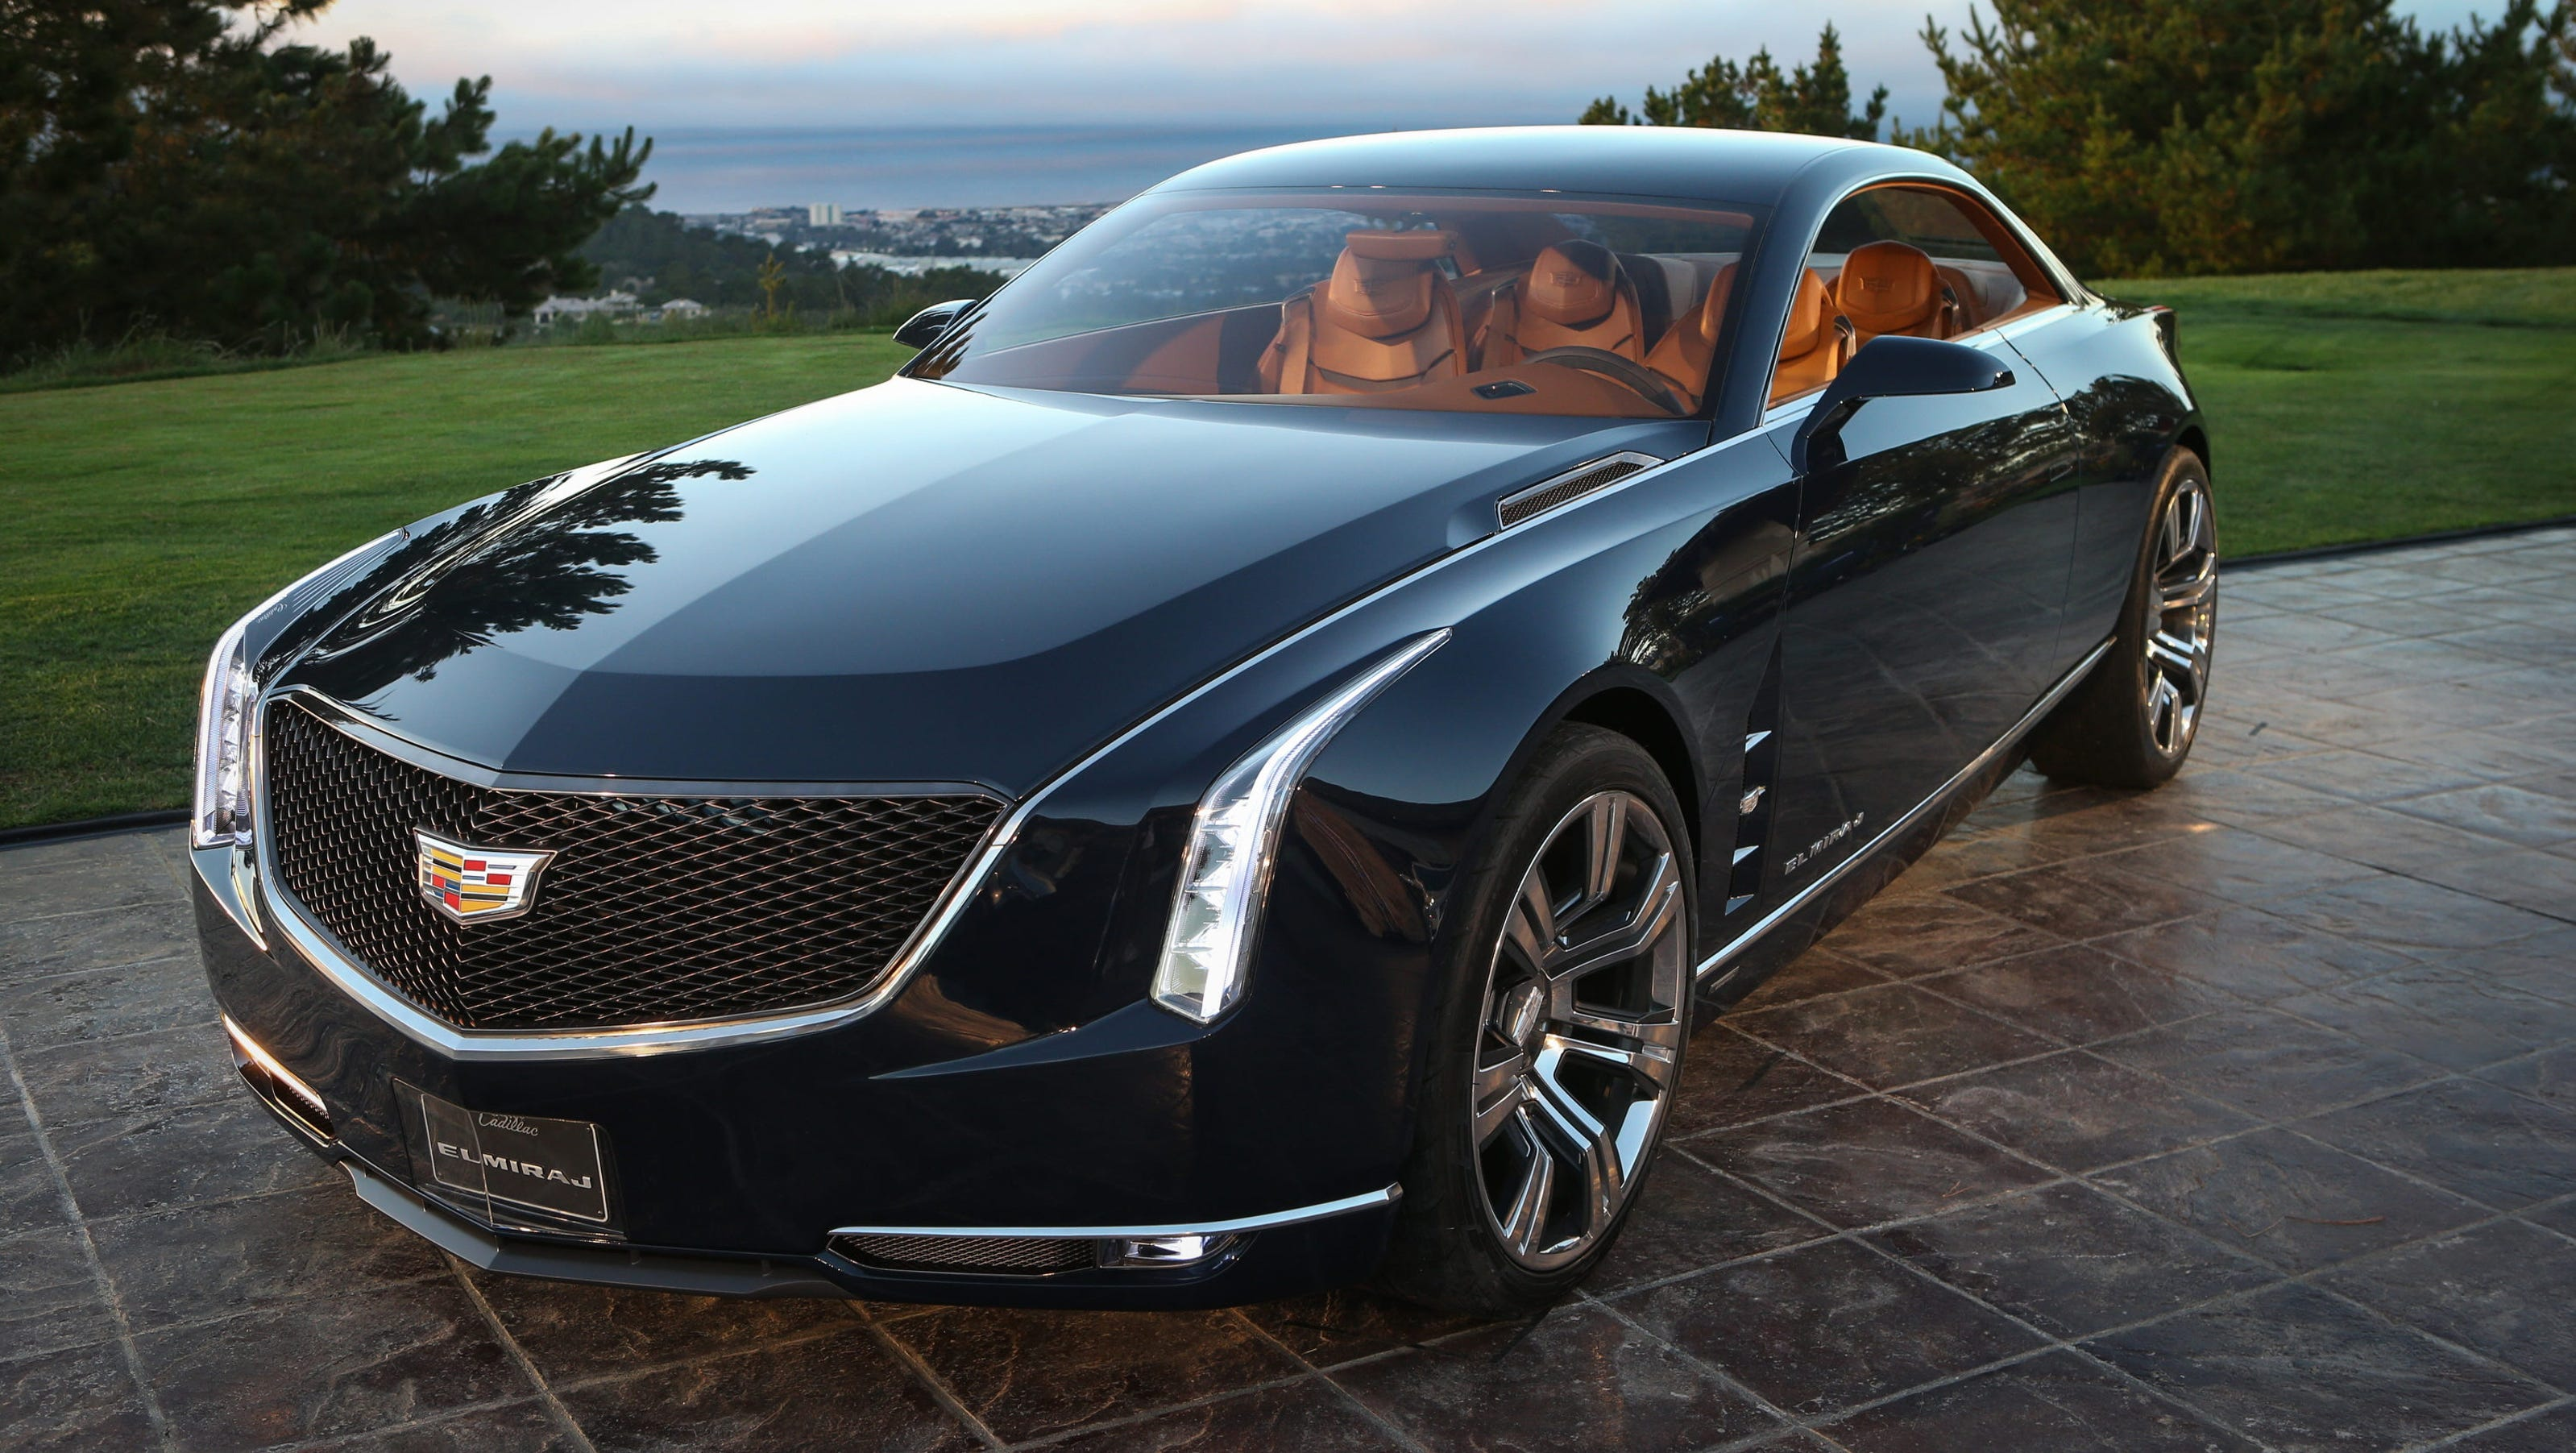 Caddy's big, new flagship named CT6